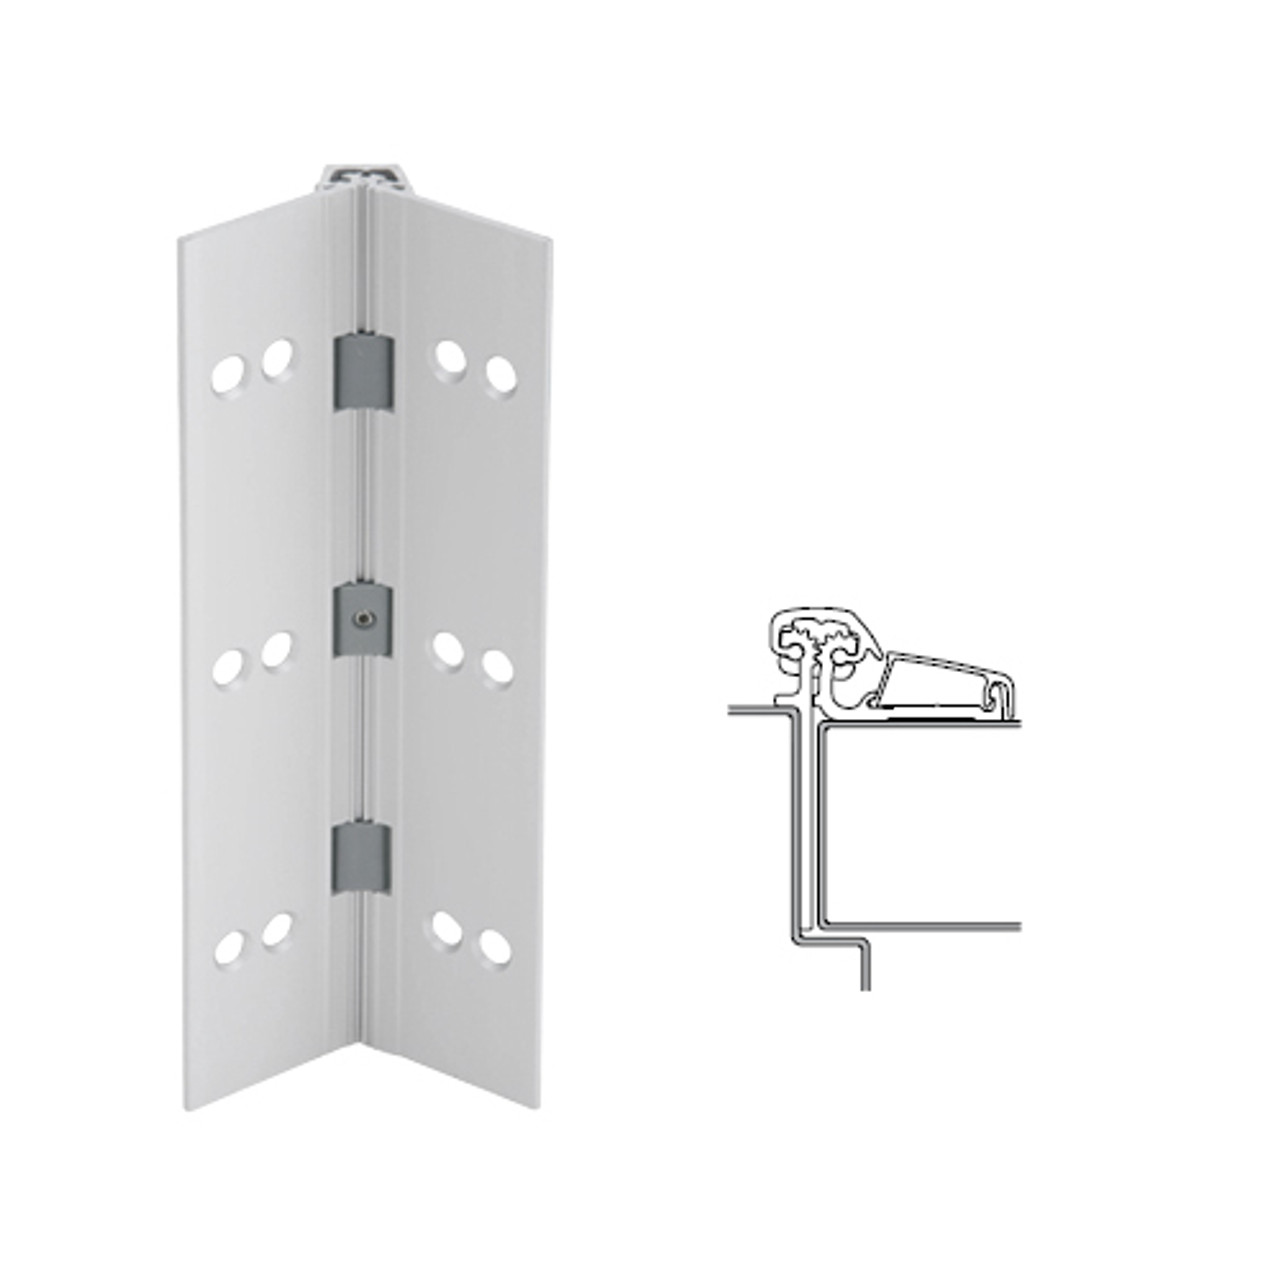 054XY-US28-120-TEKWD IVES Adjustable Half Surface Continuous Geared Hinges with Wood Screws in Satin Aluminum